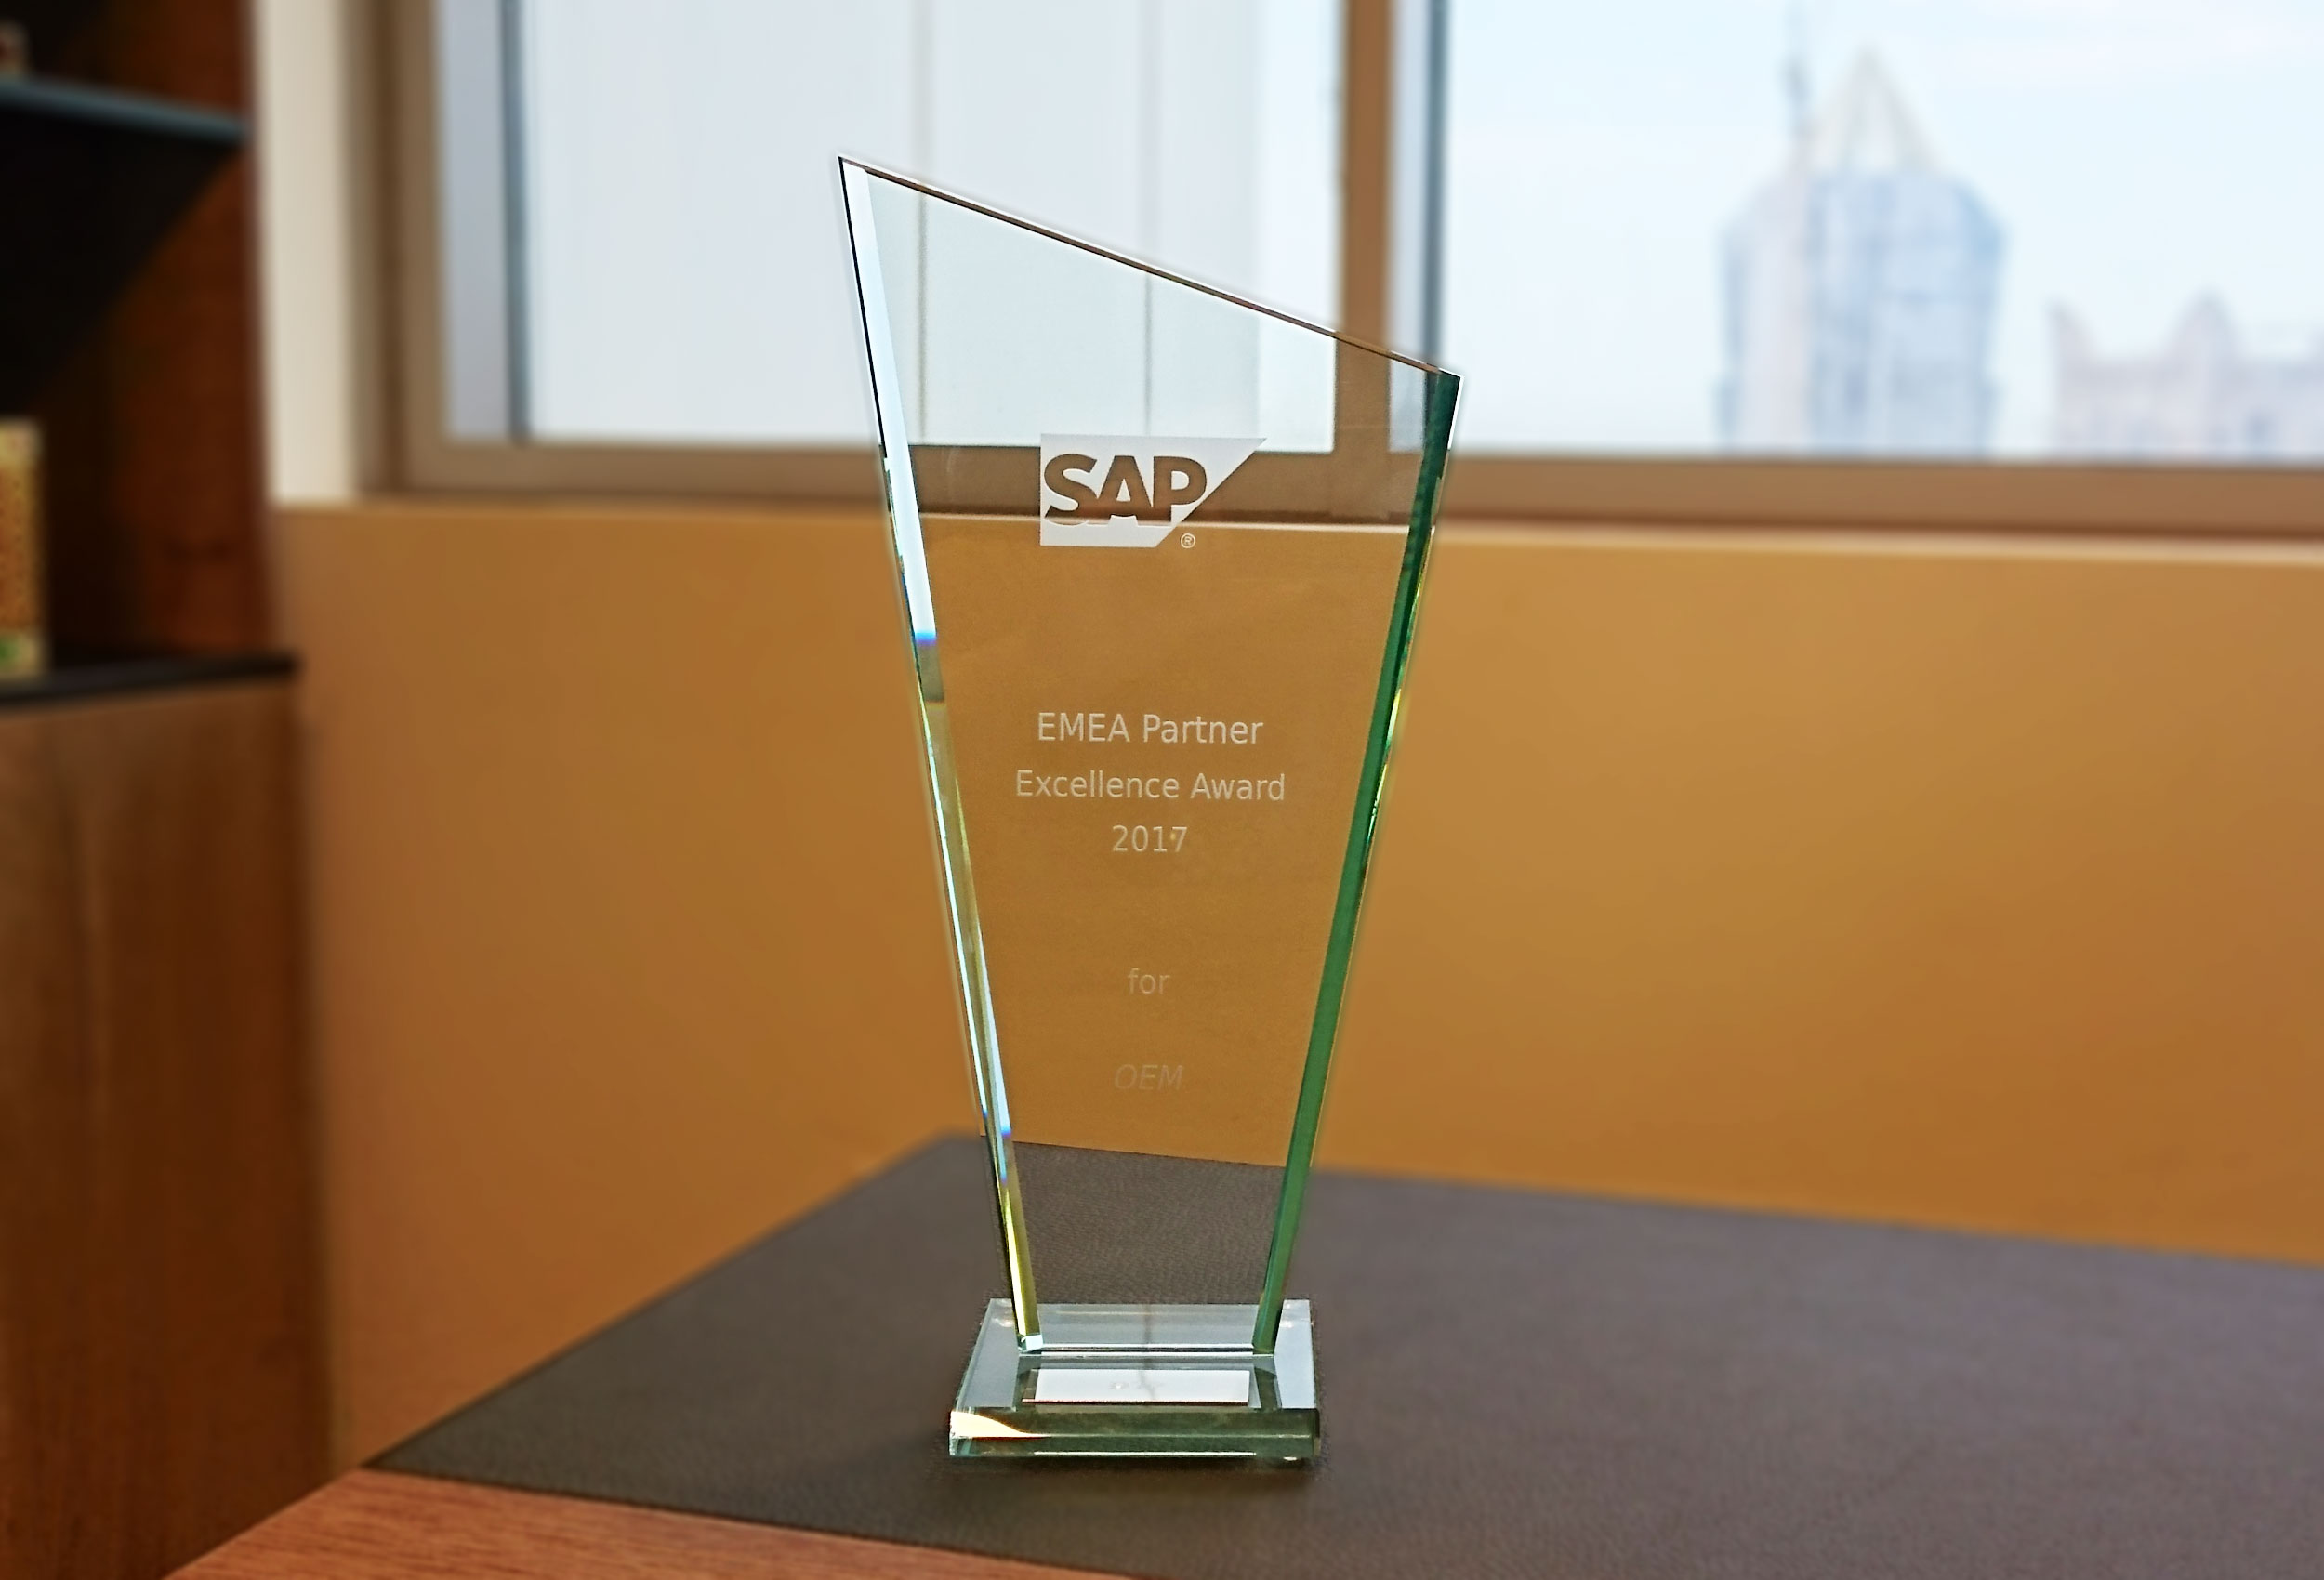 SAP EMEA Partner Excellence Award 2017 for DTP